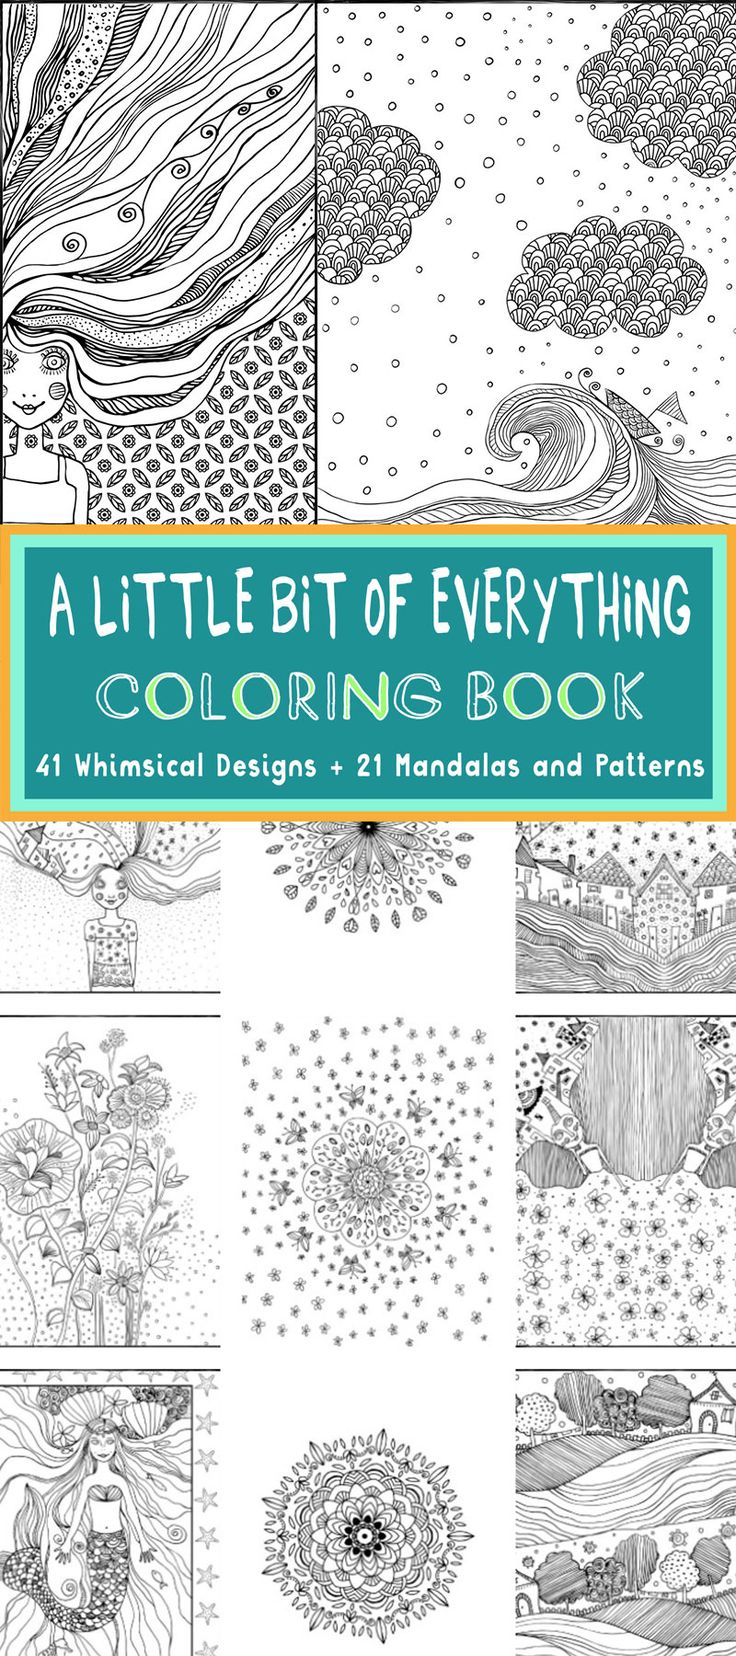 Whimsical designs coloring book - A Peek Inside The Book And Free Coloring Pages